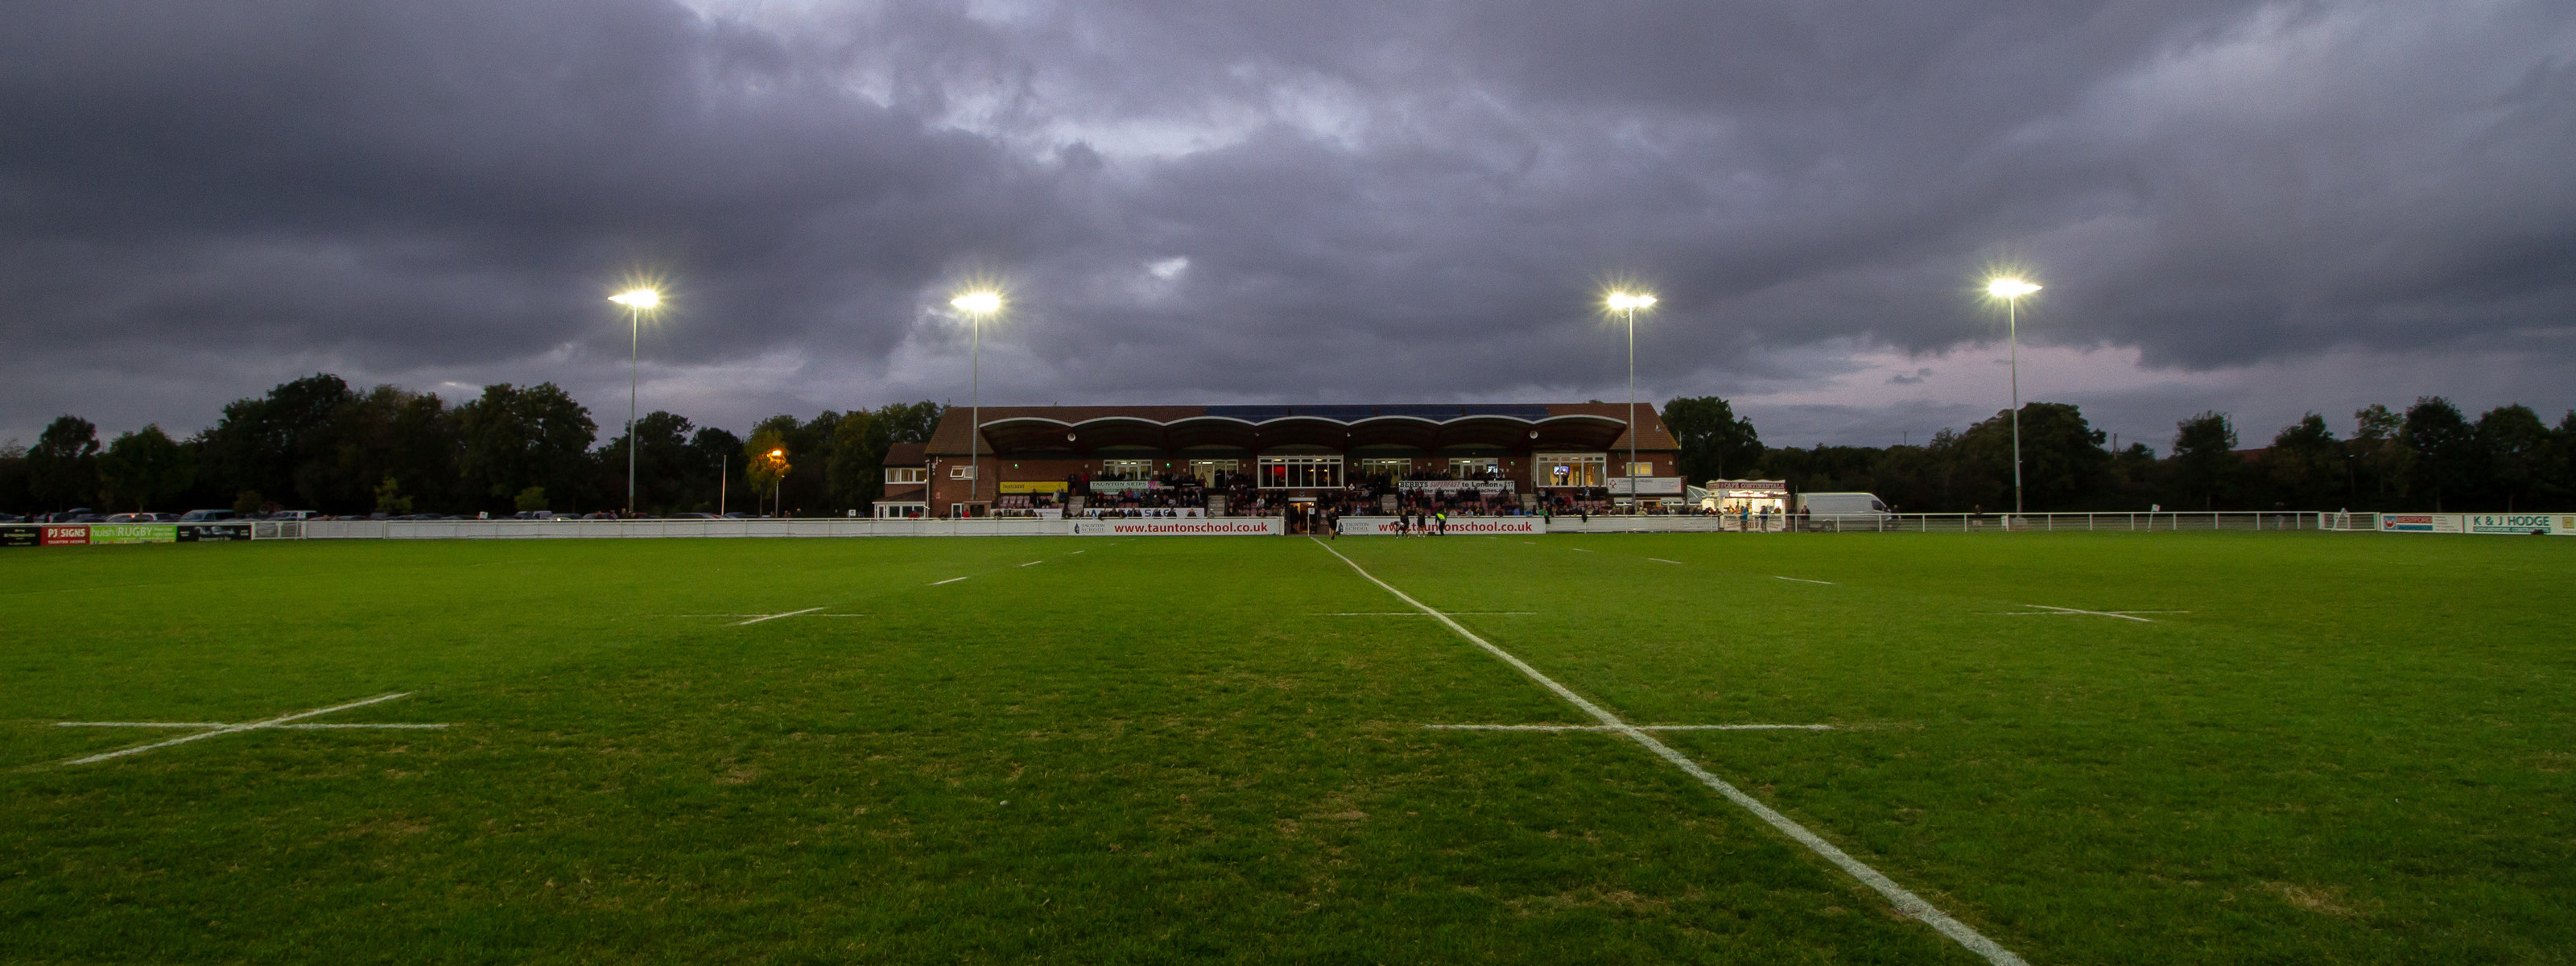 The Commsplus Stadium - Home of Taunton Rugby Club